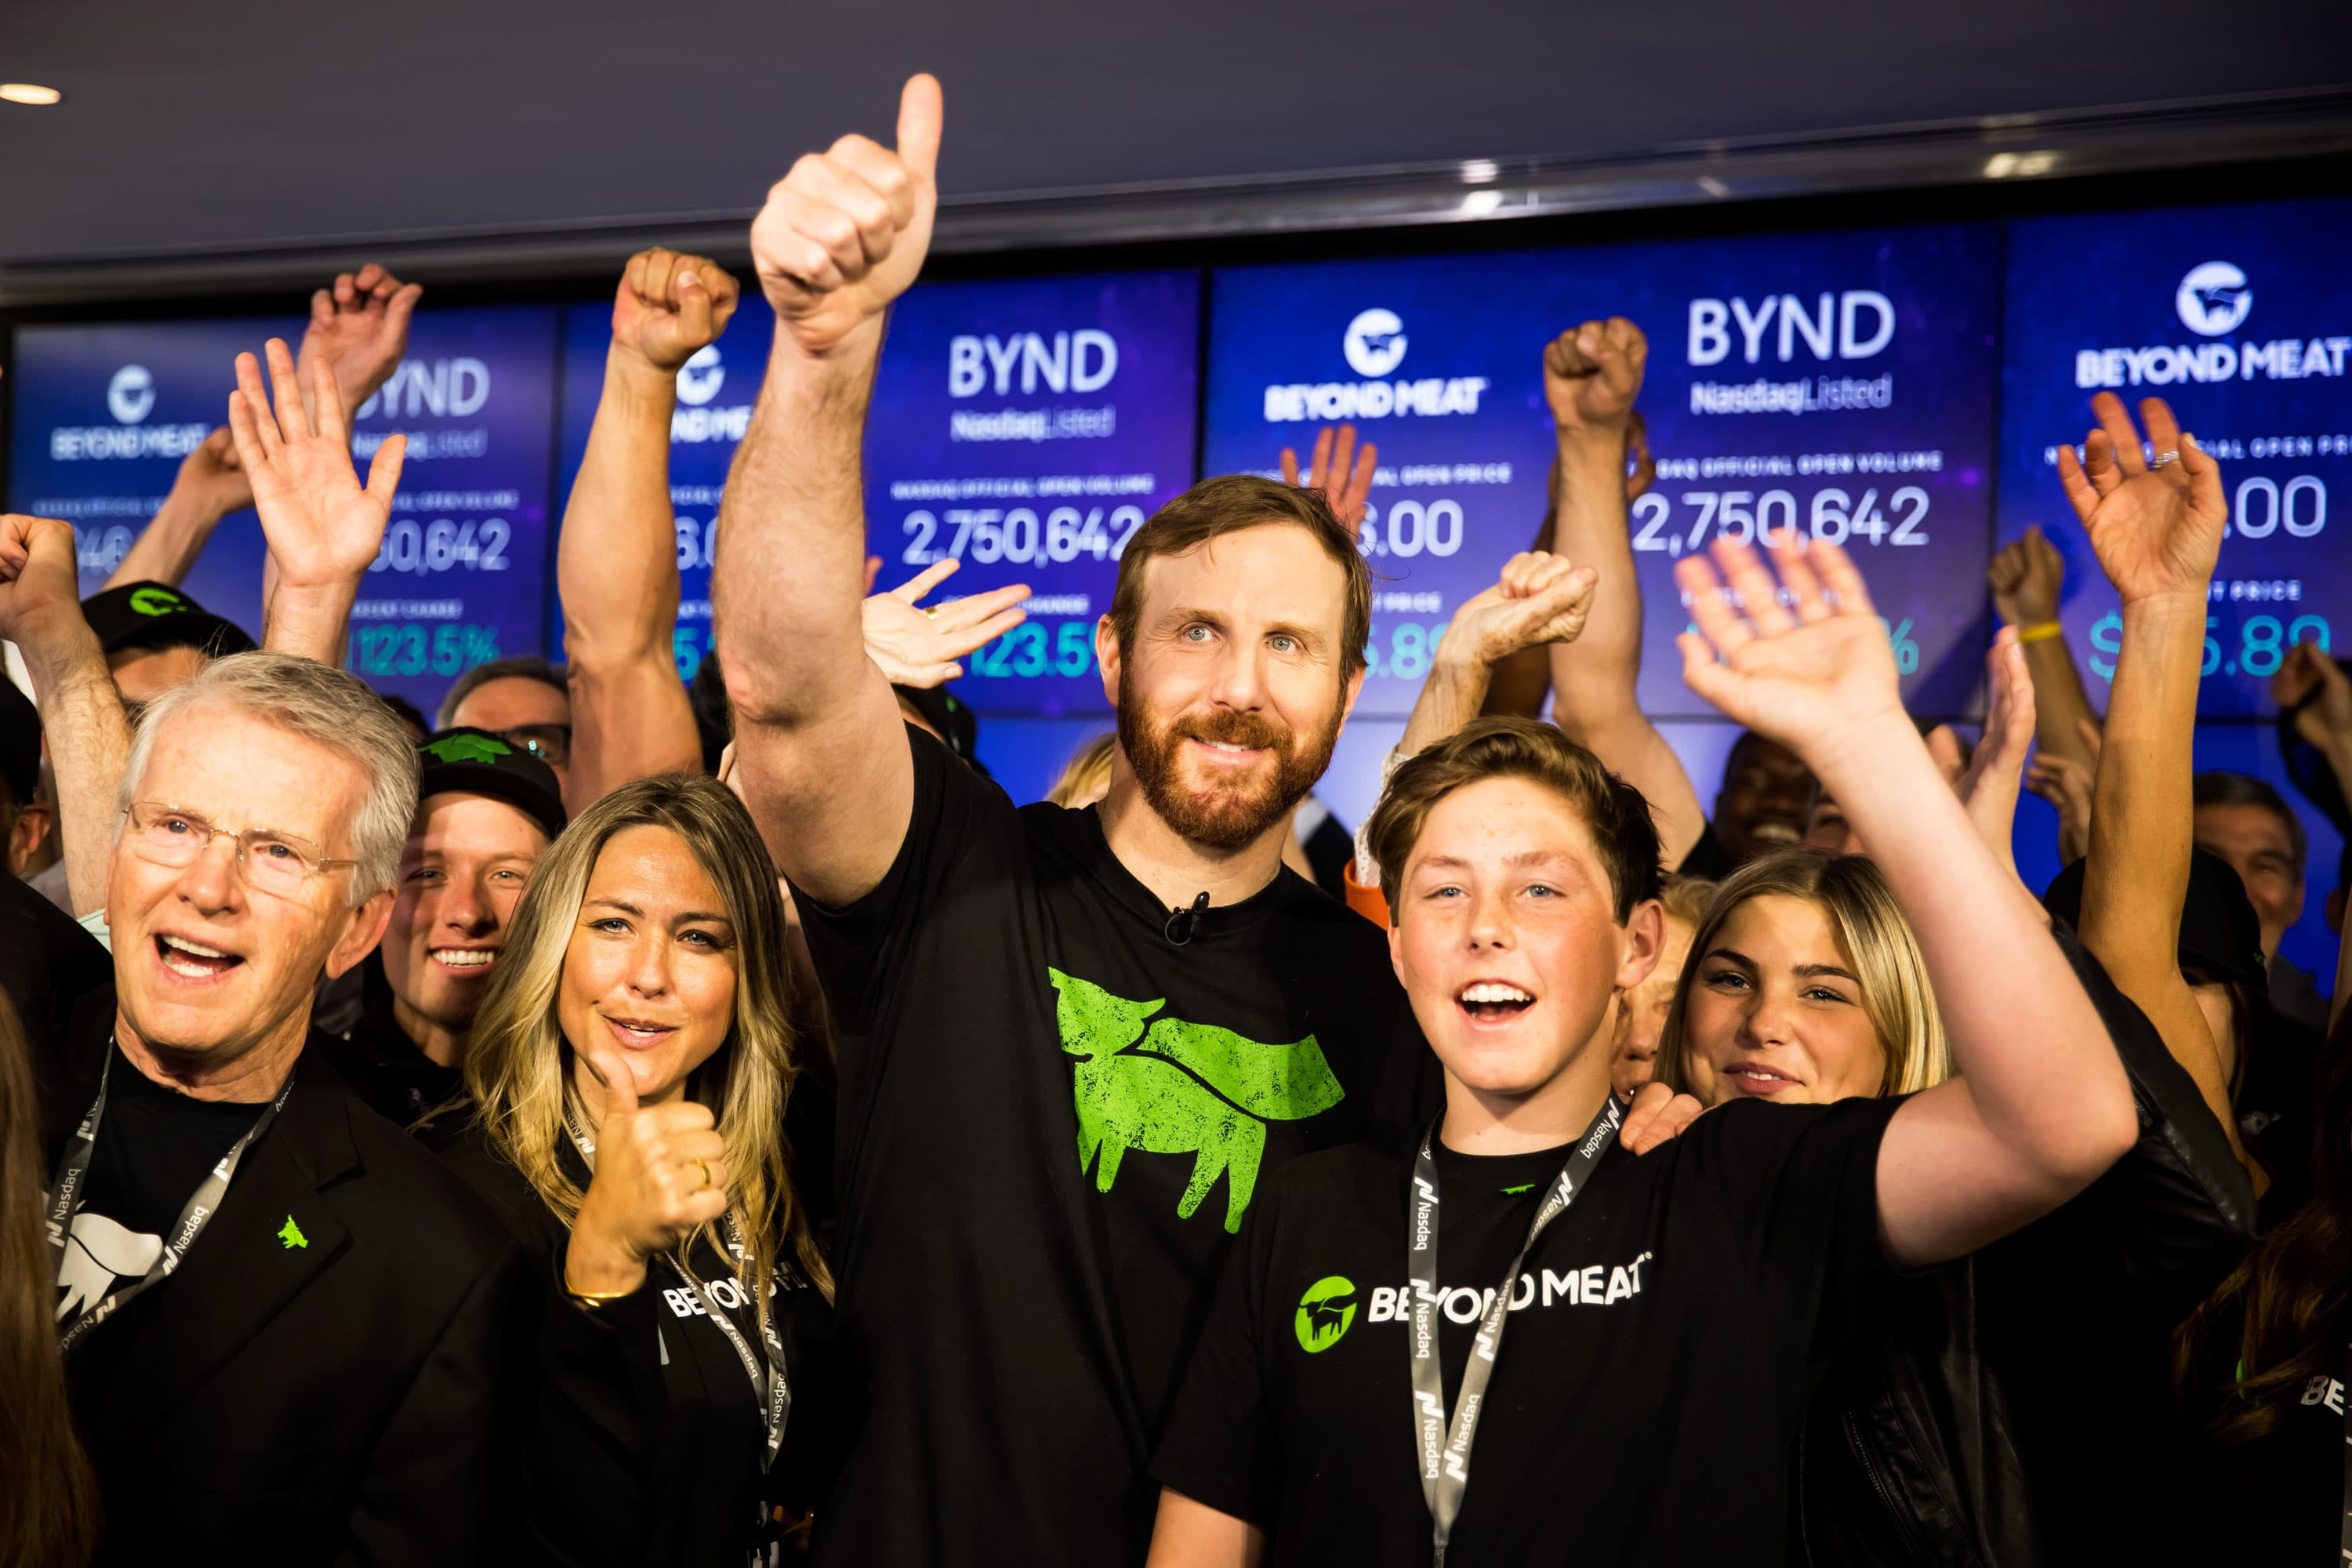 Twitter co-founder Williams says his 'phenomenally lucrative' bet on Beyond Meat stemmed from his vegan past